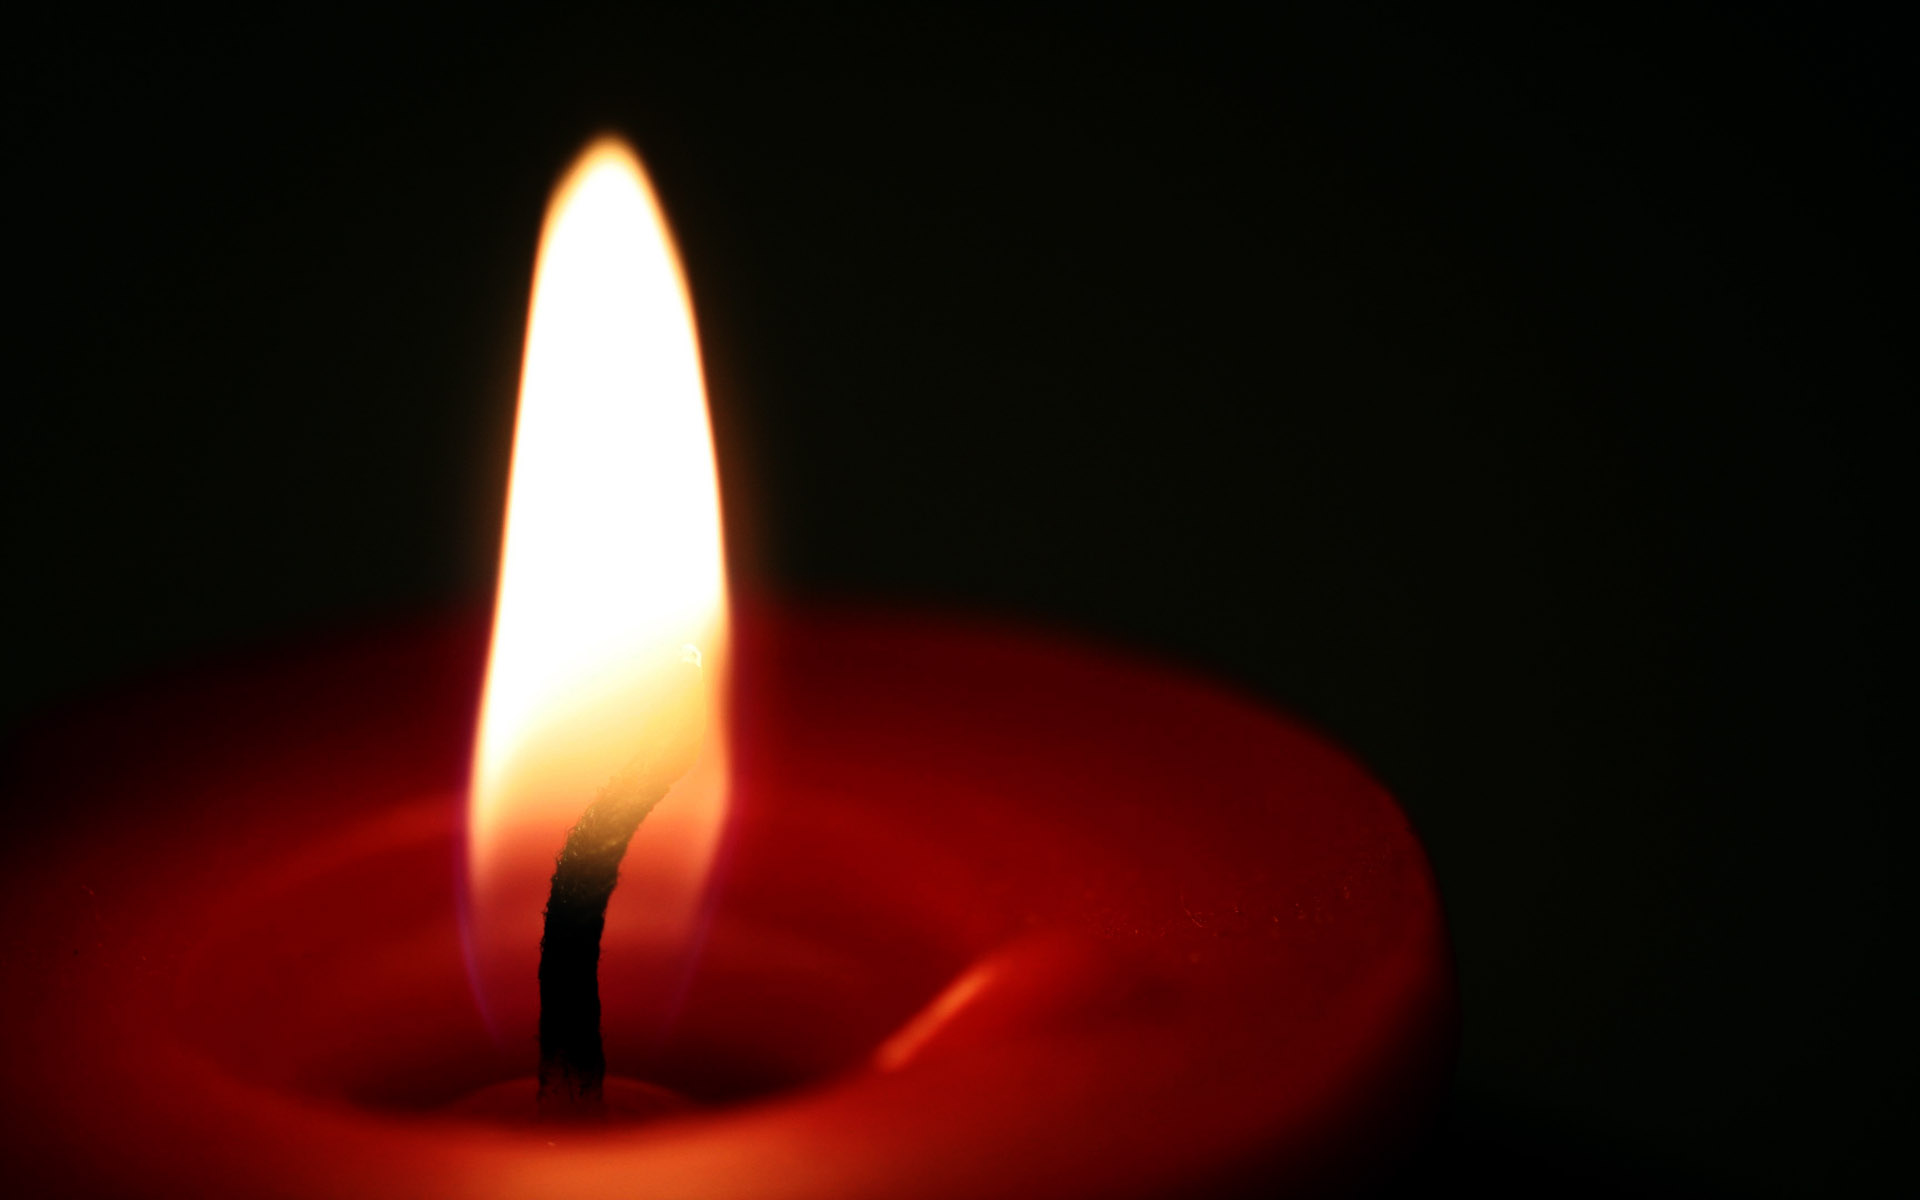 Candle wallpaper 10053